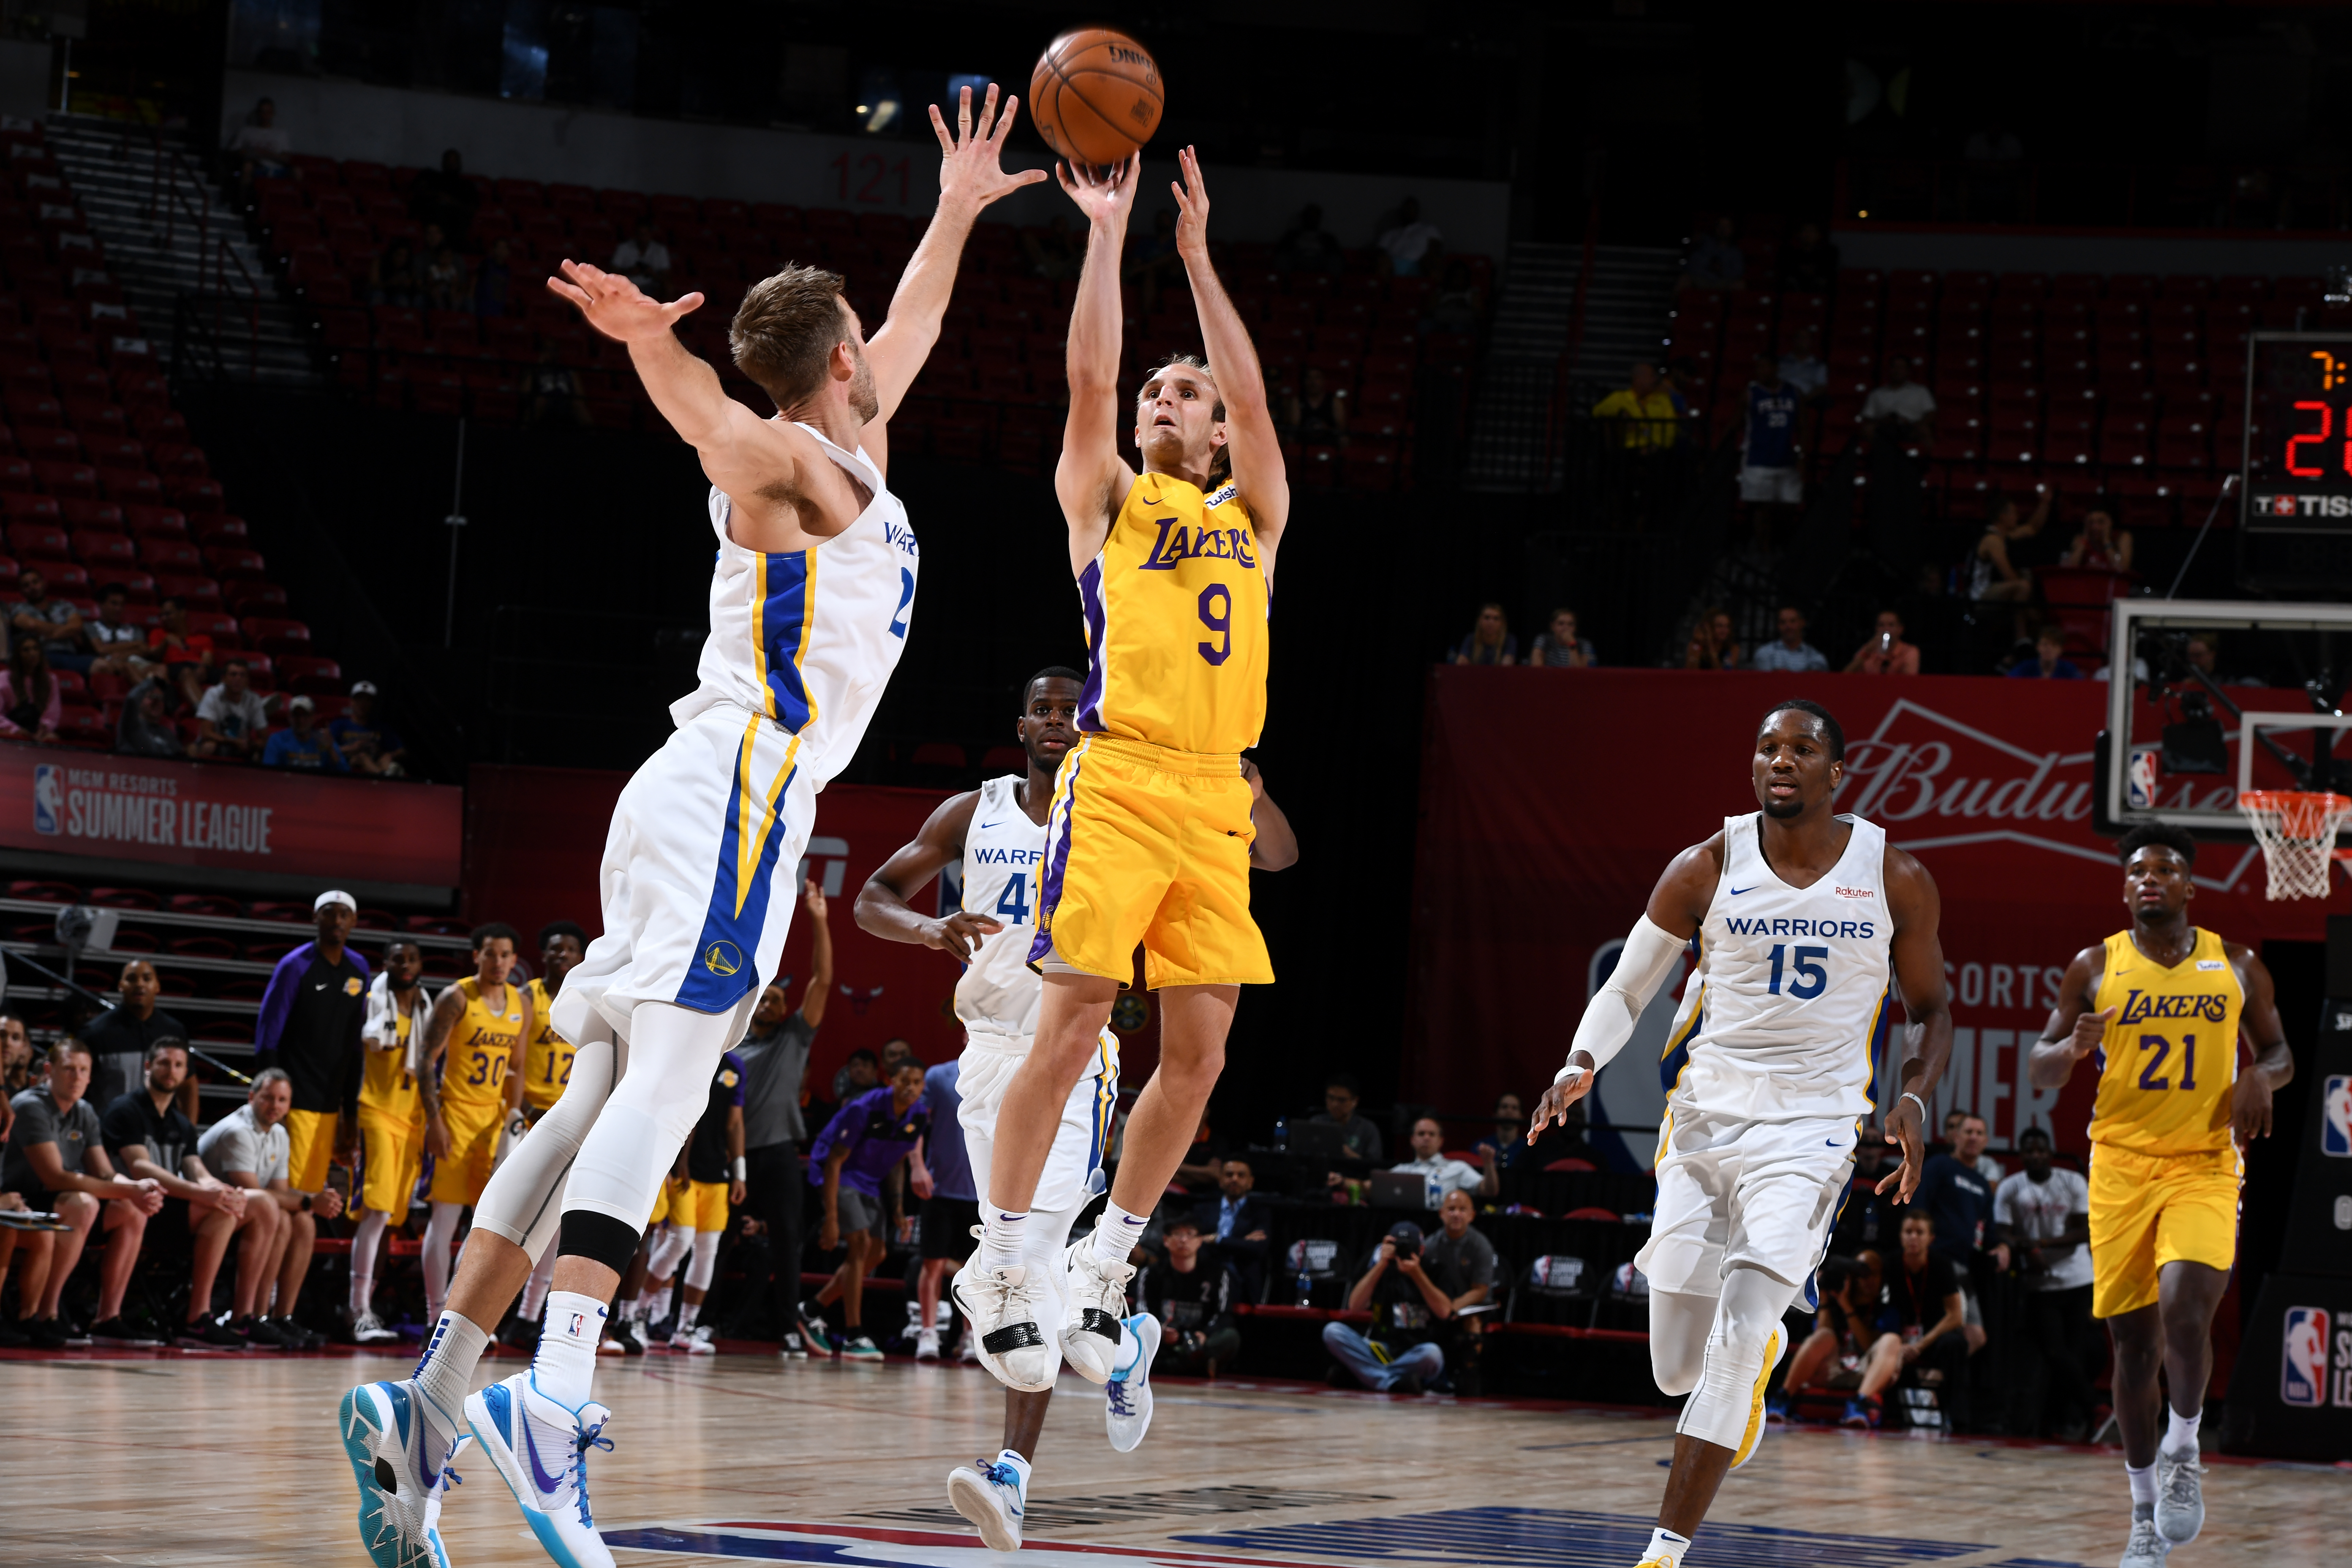 2019 Las Vegas Summer League - Day 8 - Los Angeles Lakers v Golden State Warriors